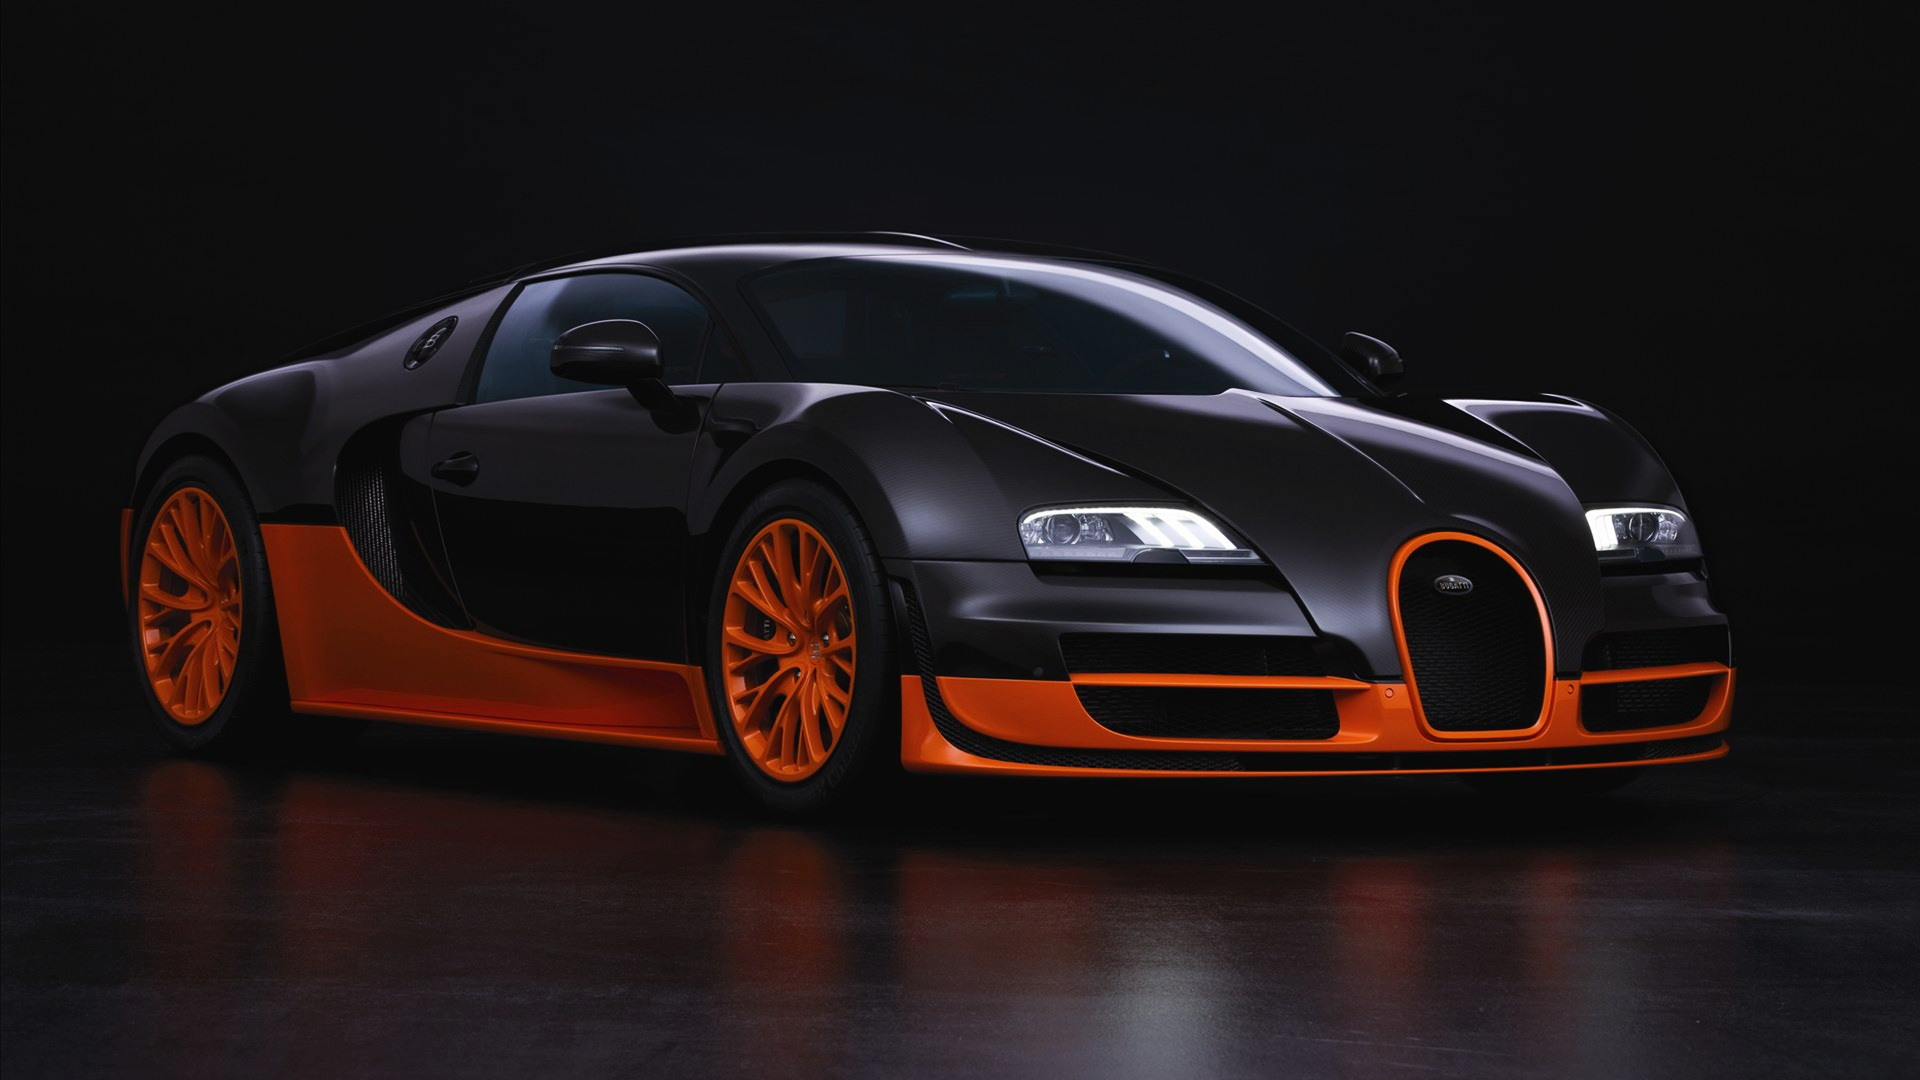 Expensive Sports Cars Amazing Wallpapers